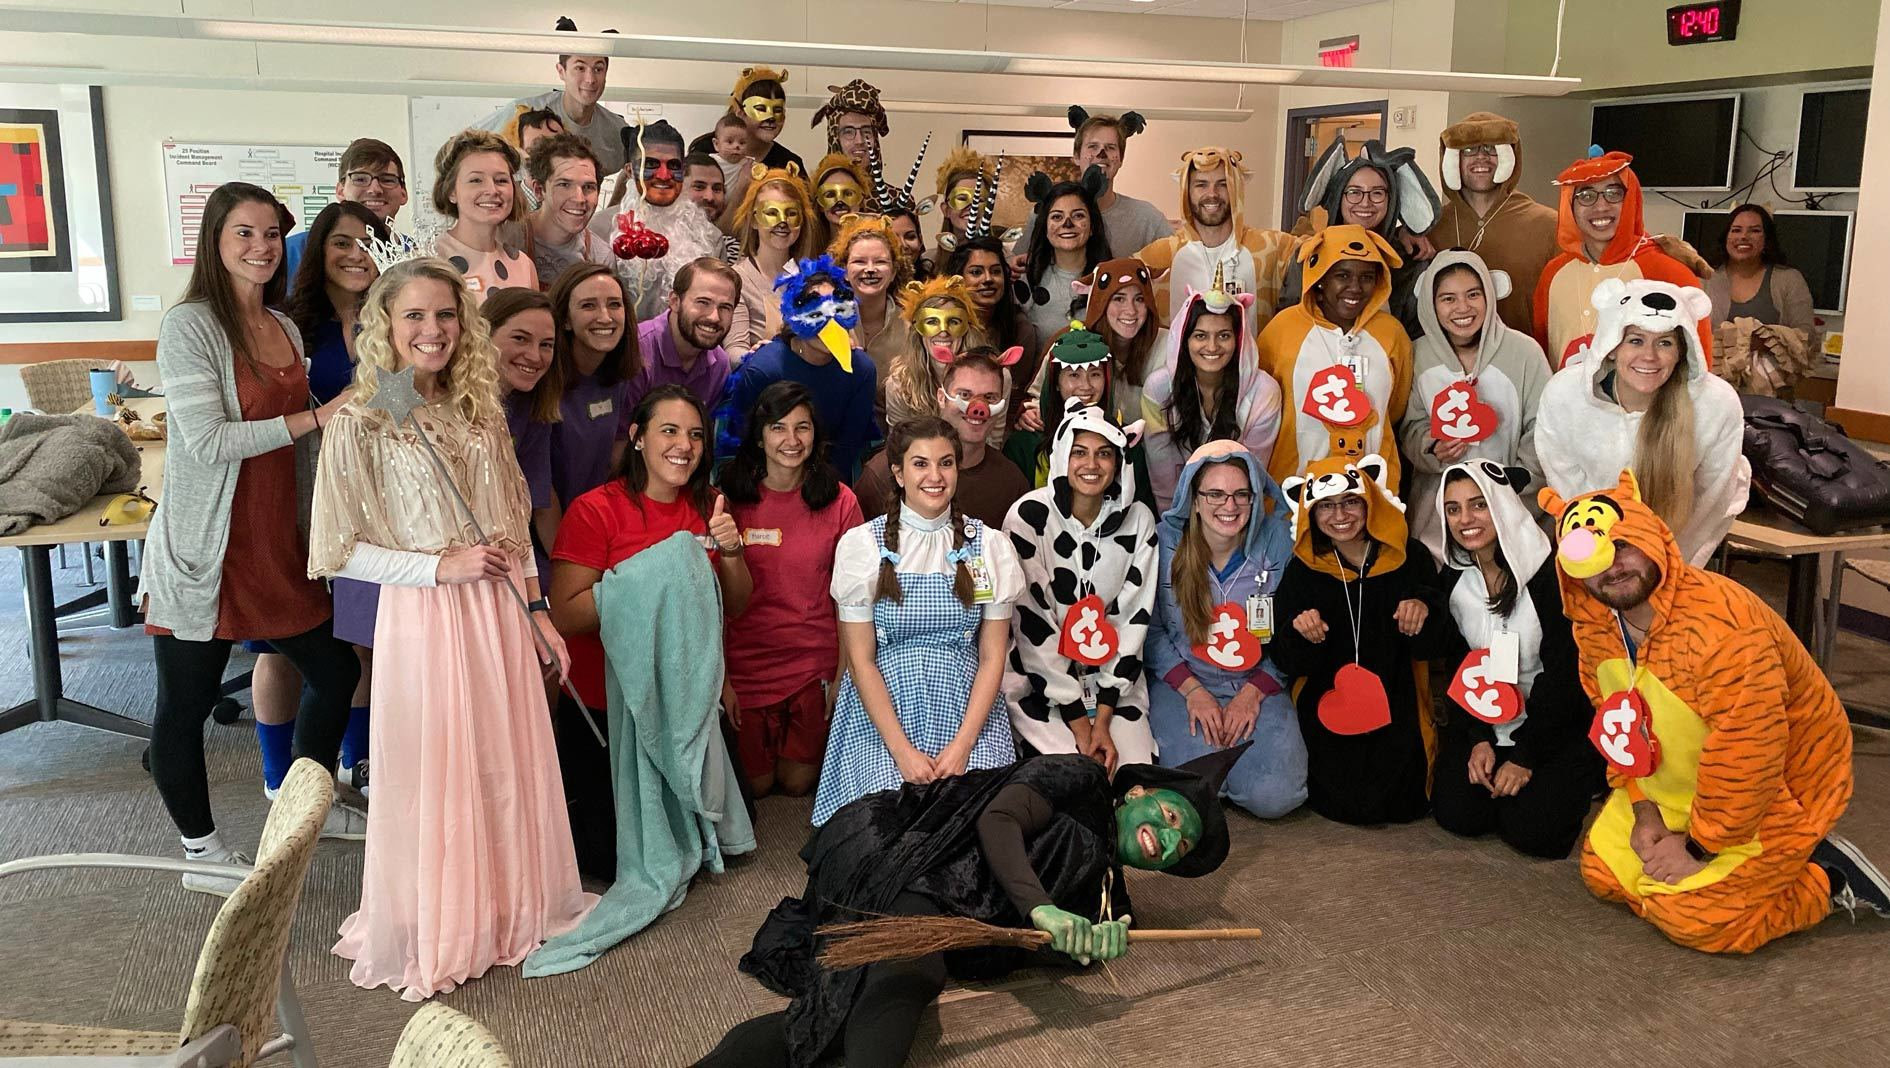 A group of pediatrics residents dressed up in Halloween costumes for the kids.